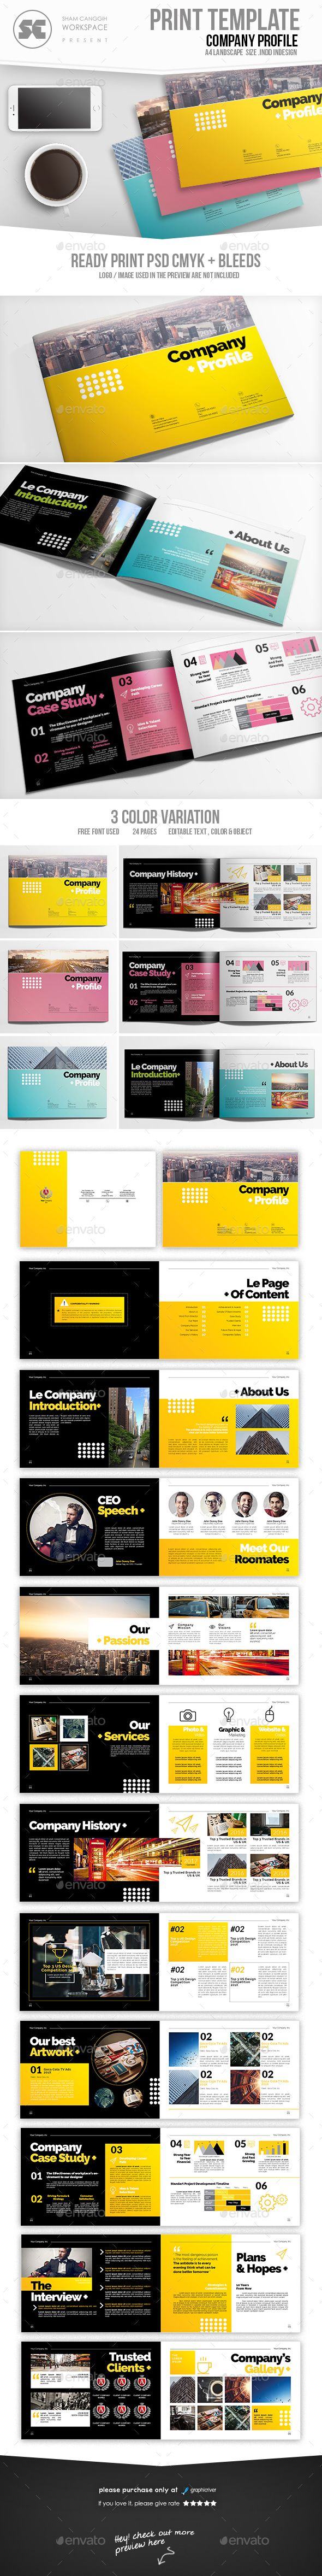 Company Profile Brochure Template InDesign INDD. Download here: https://graphicriver.net/item/company-profile/17314502?ref=ksioks